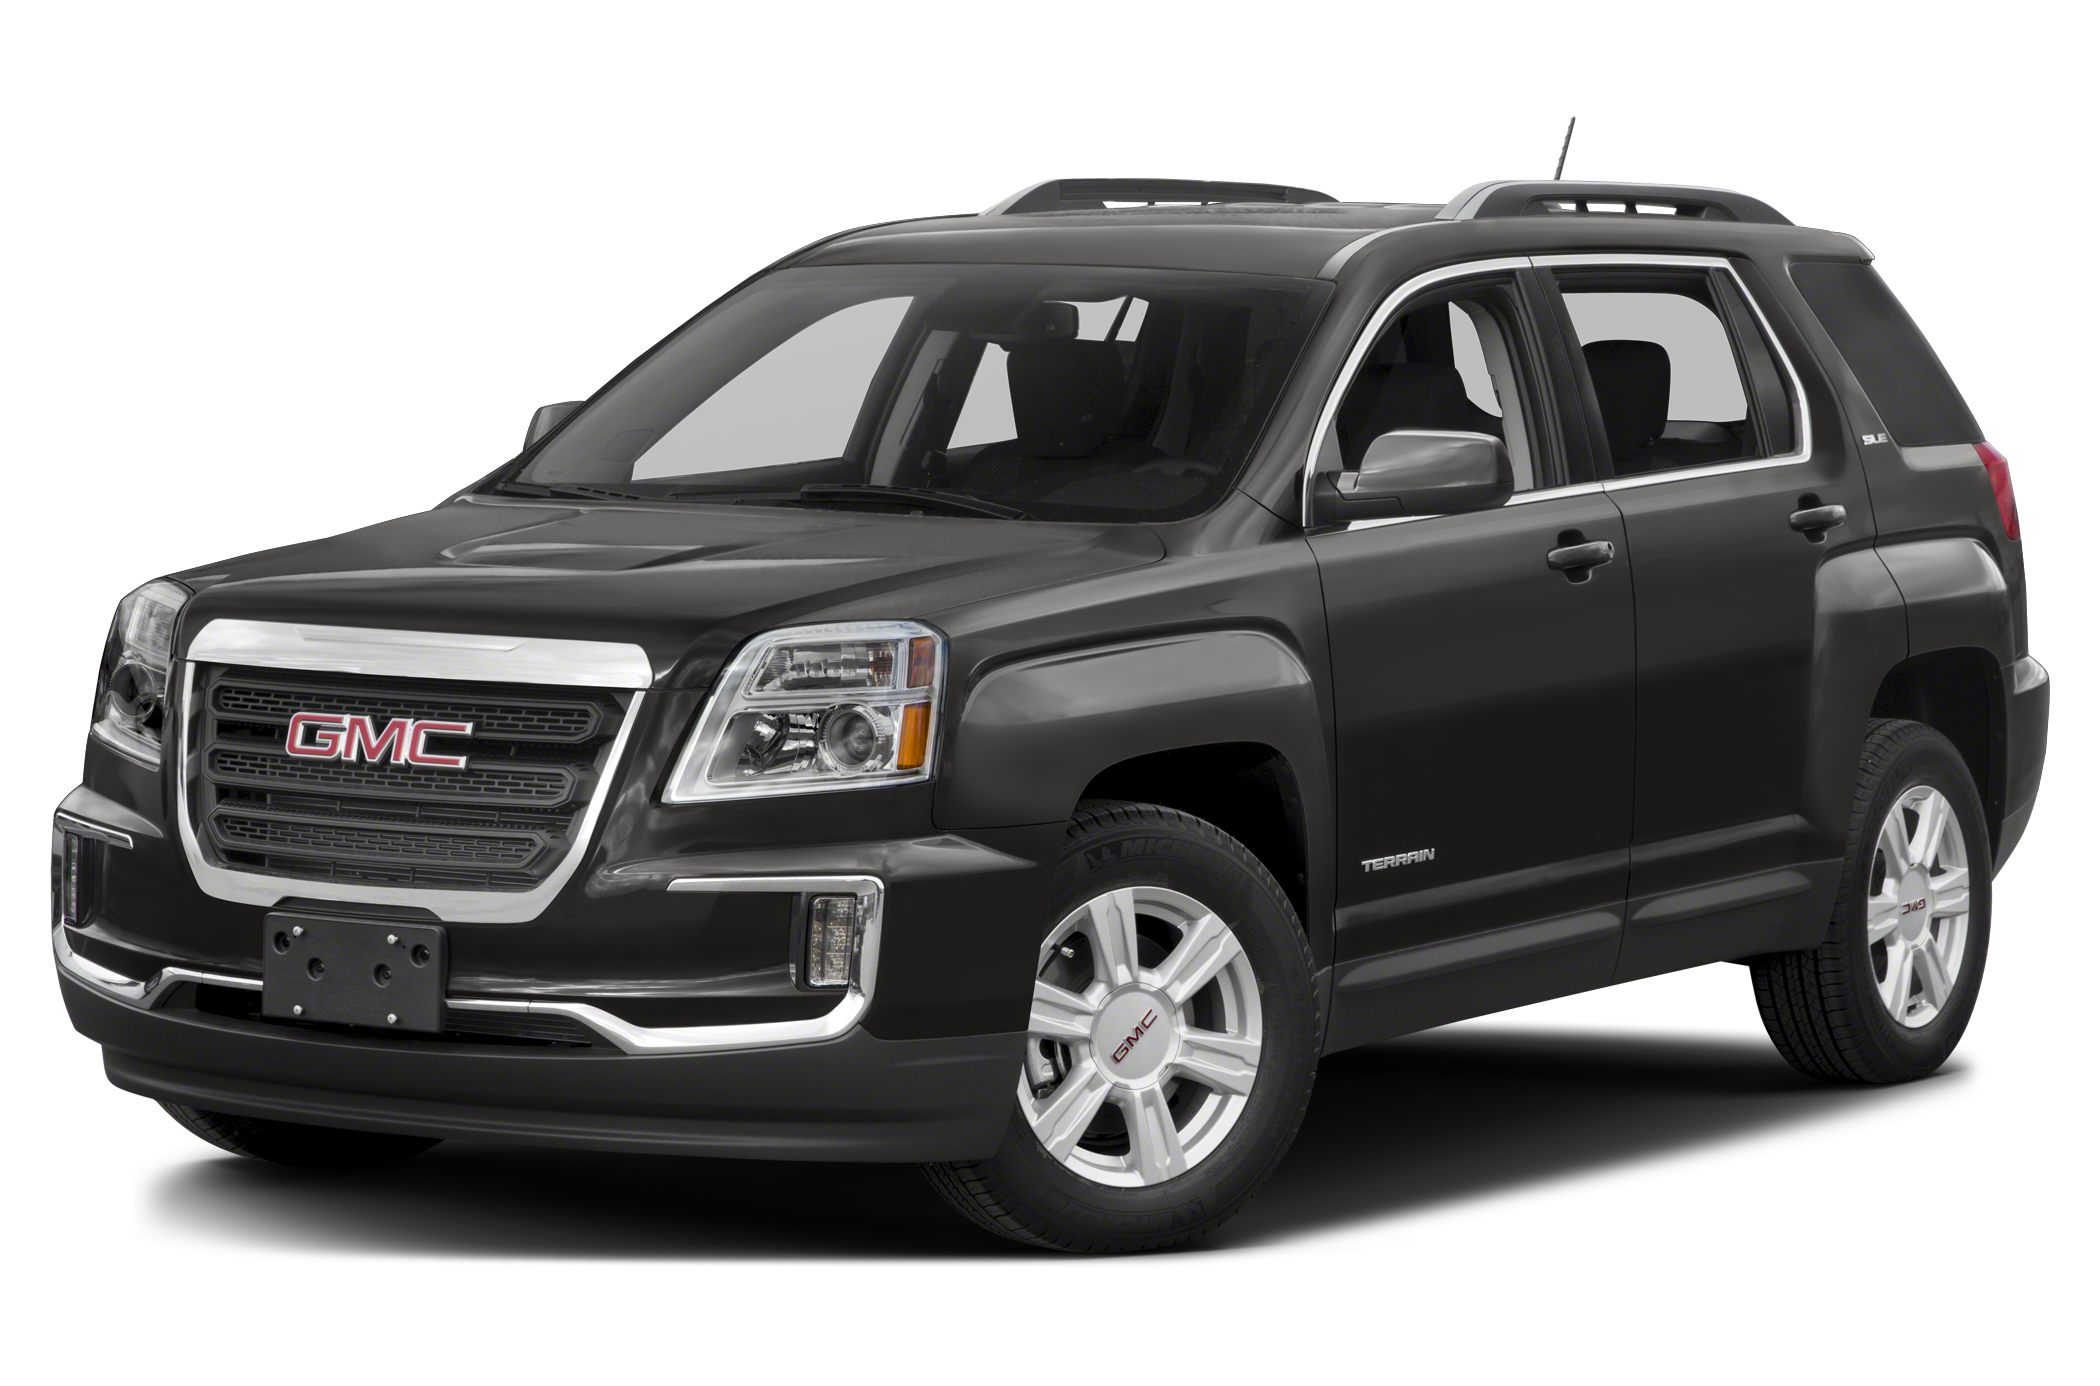 2016 Gmc Terrain Styles Amp Features Highlights